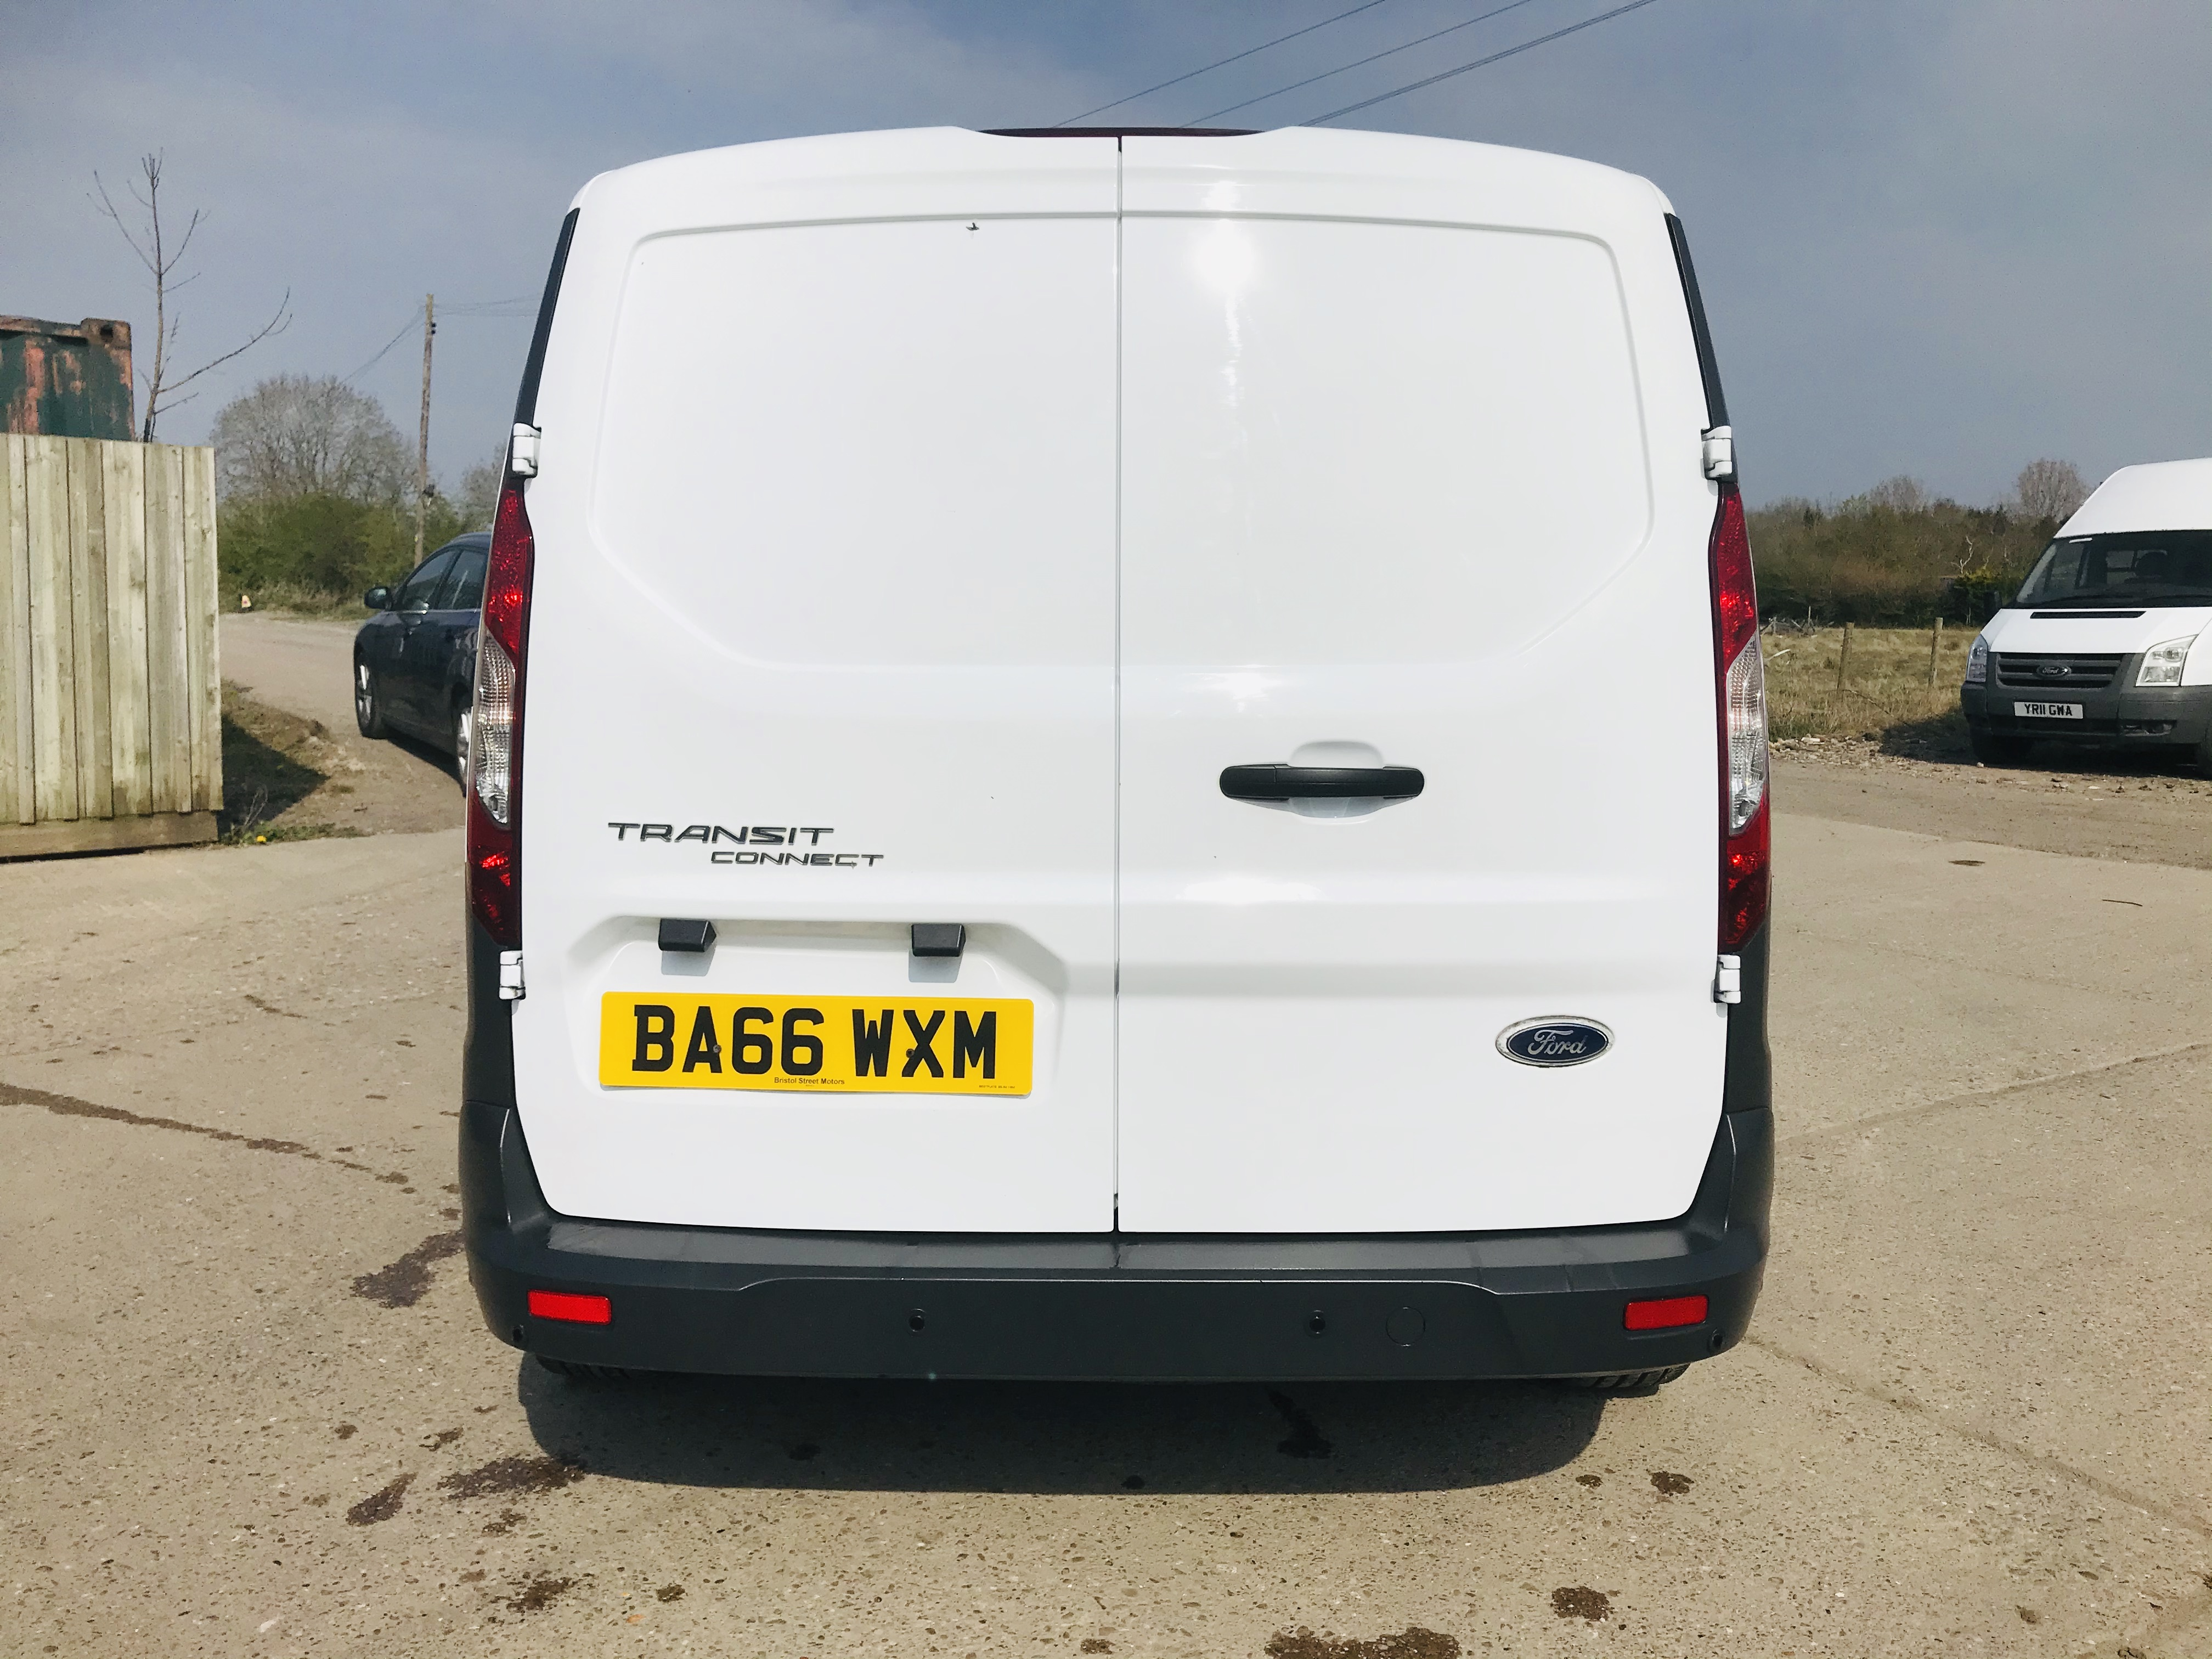 """ON SALE FORD TRANSIT CONNECT 1.6TDCI ECO-TECH 'LWB' 2017 REG - 1 OWNER - FSH - EURO 6""""ULEZ COMPLIANT - Image 10 of 30"""